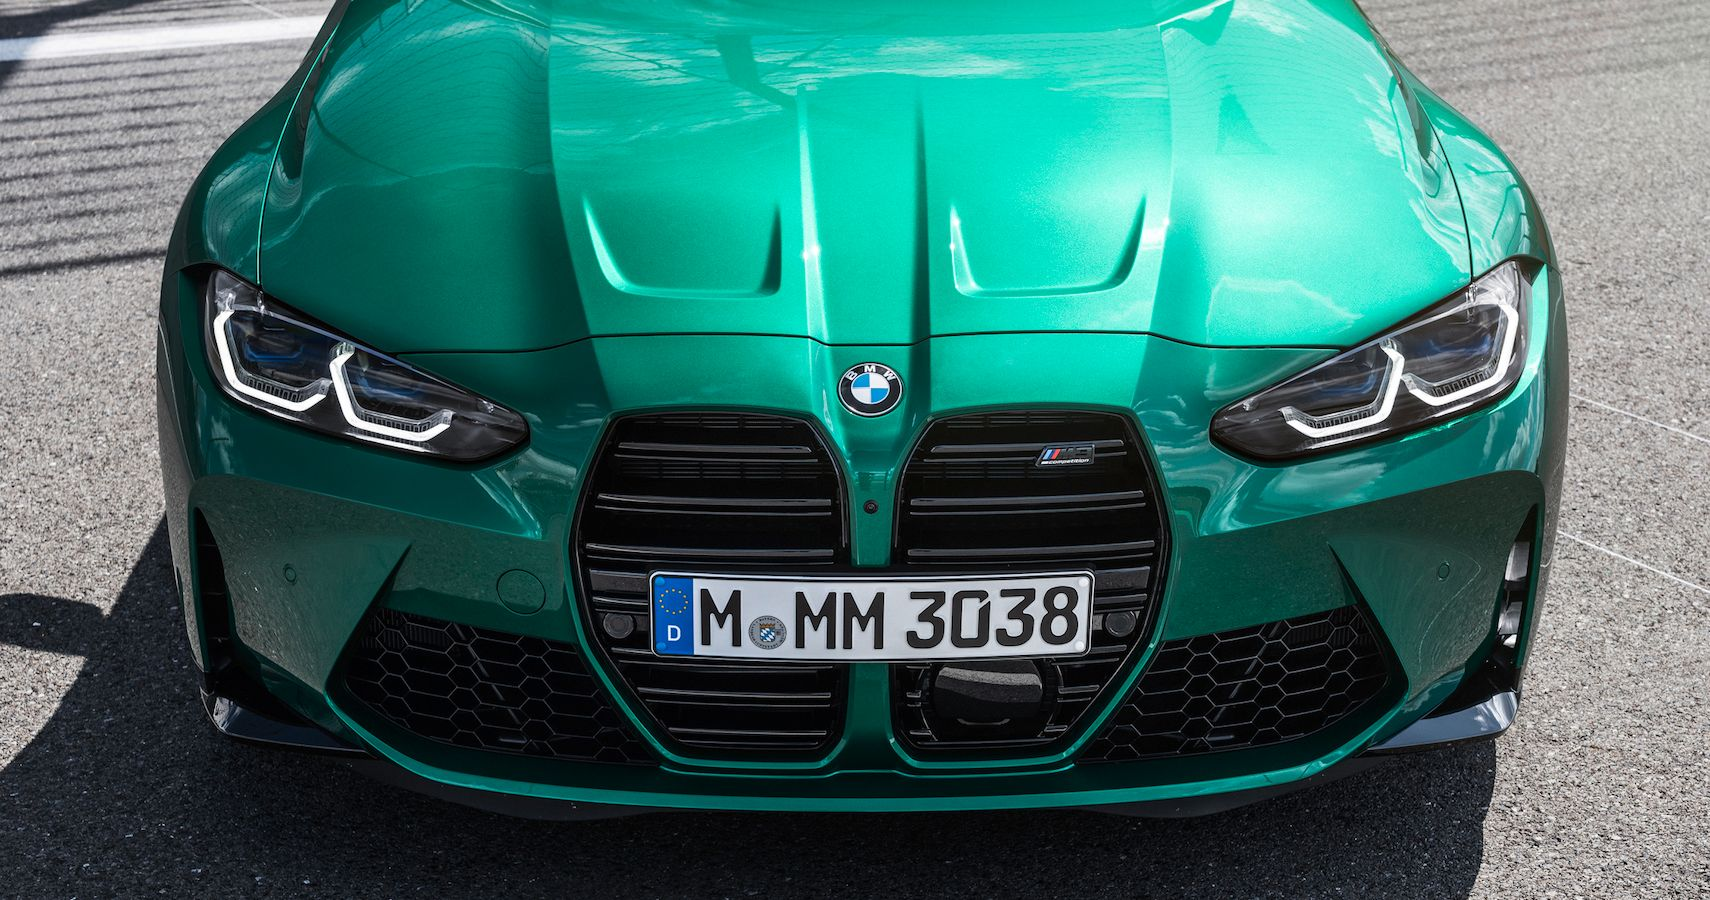 2021 BMW M3, M4: Fans Upset After Forgetting What Original BMW Kidney Grilles Look Like